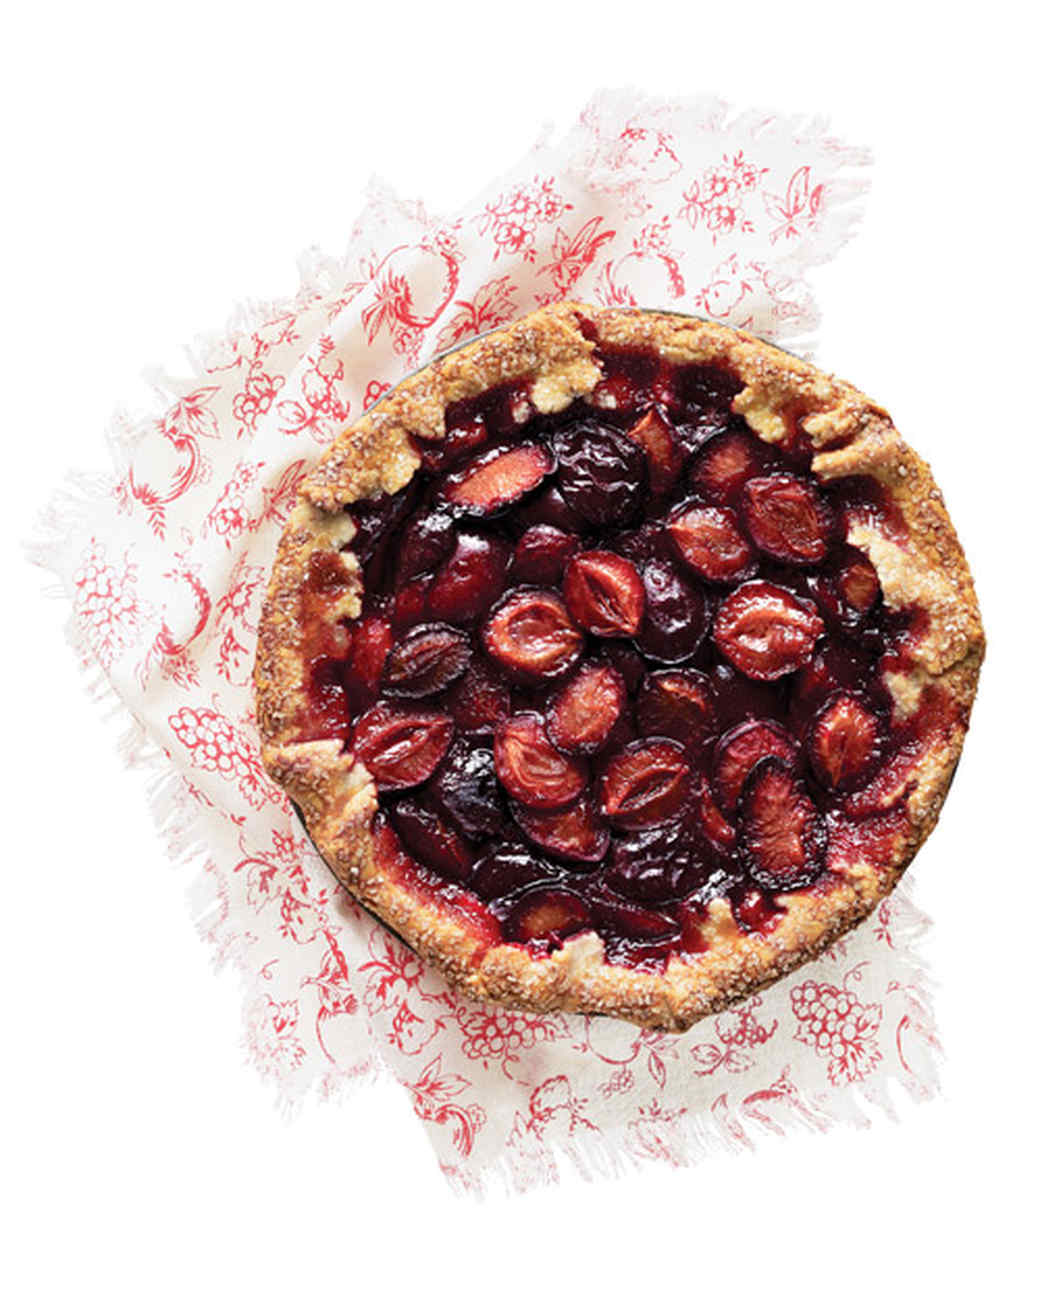 Plum-and-Port Crostata